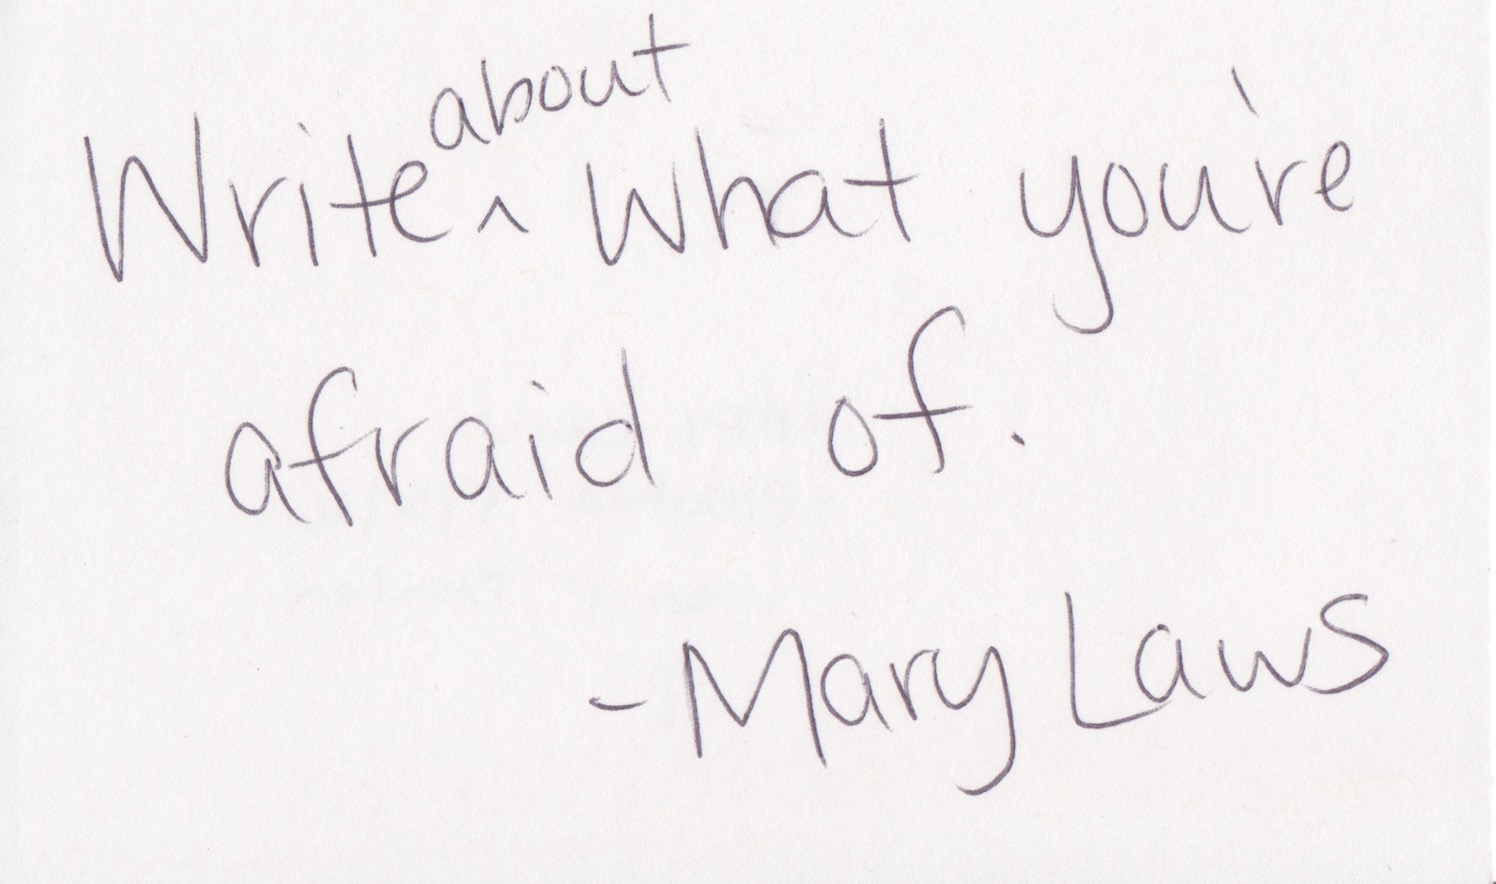 Mary Laws